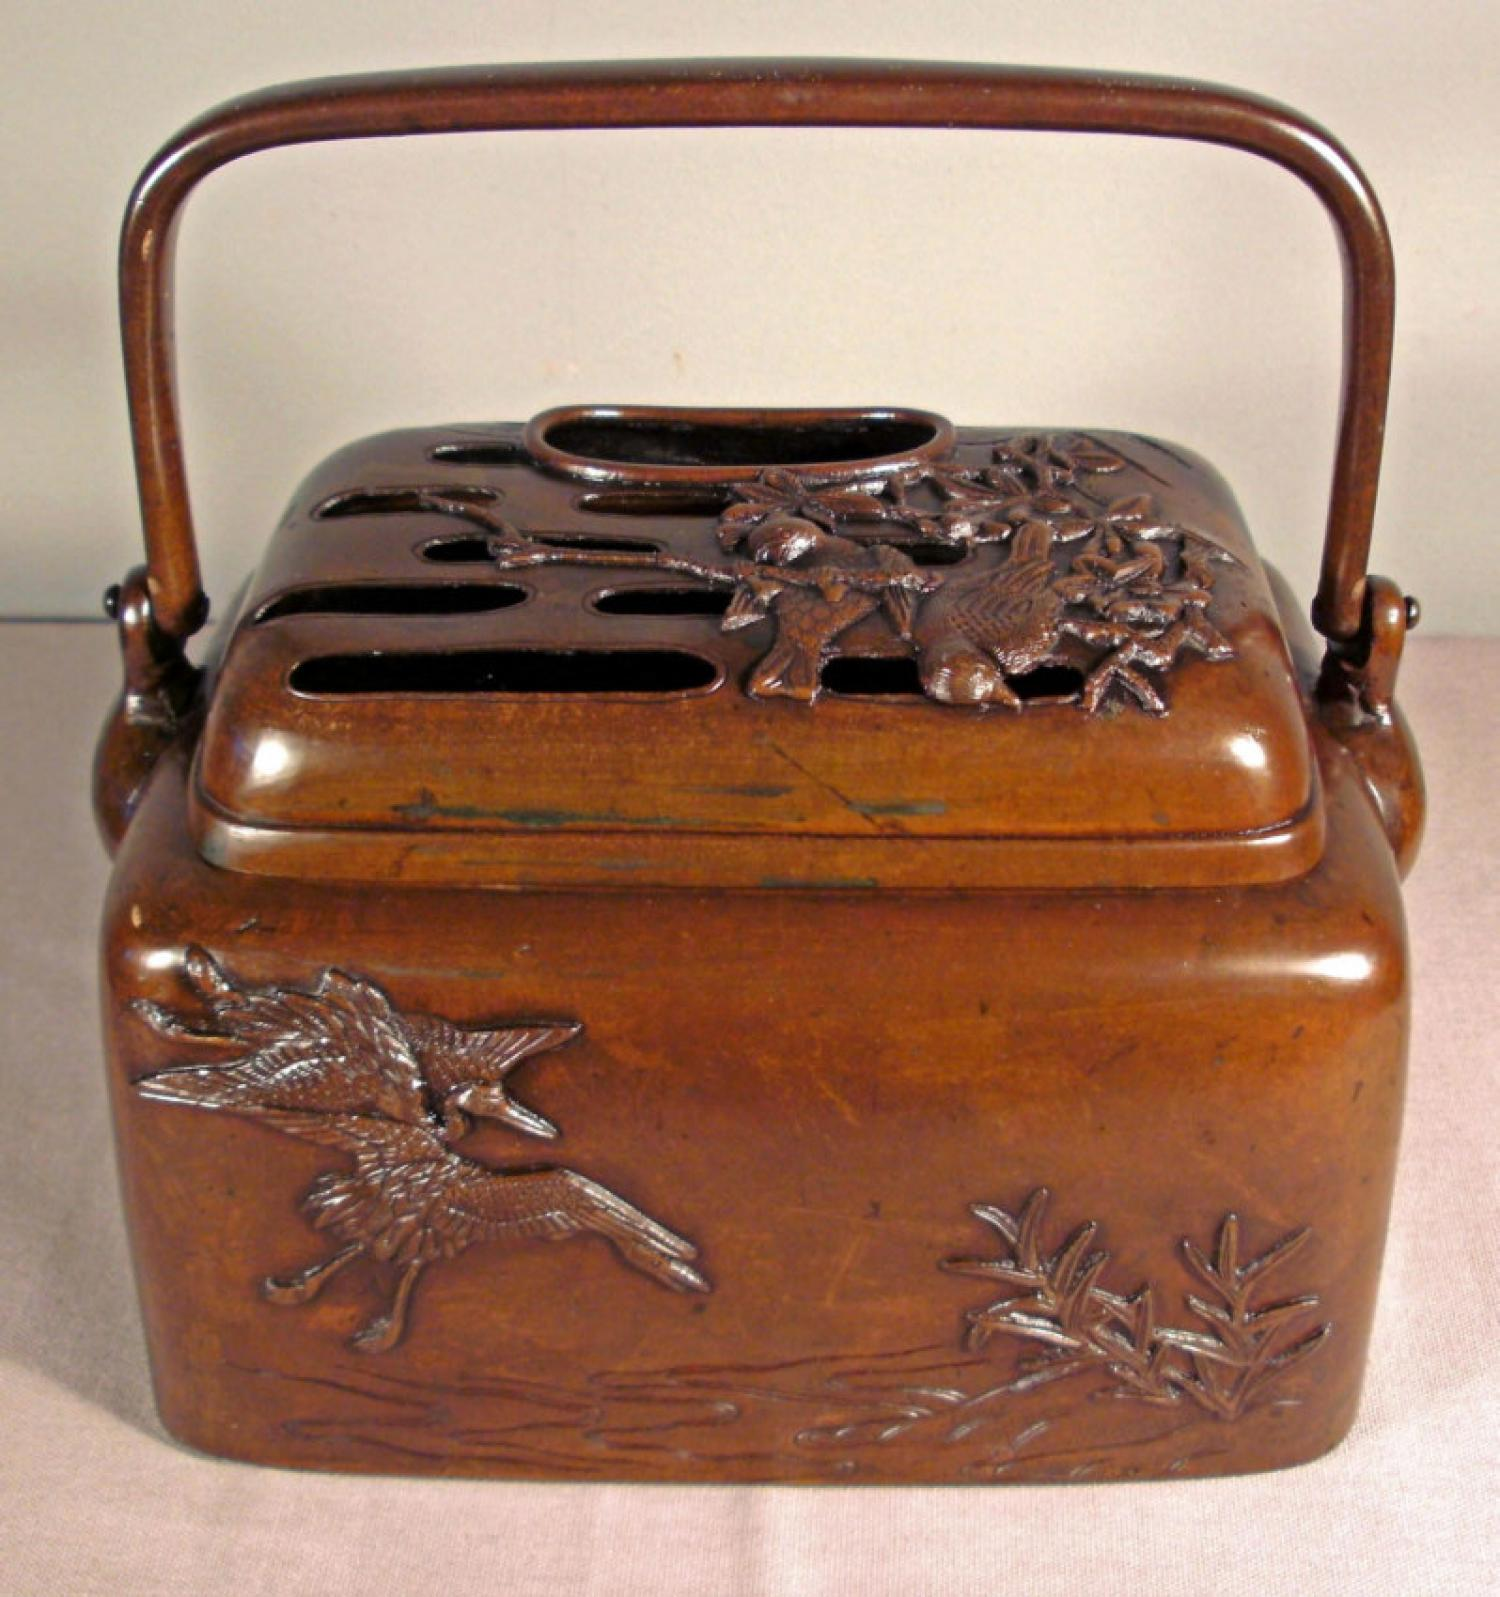 Japanese 19th C bronze brazier or hand warmer c1870